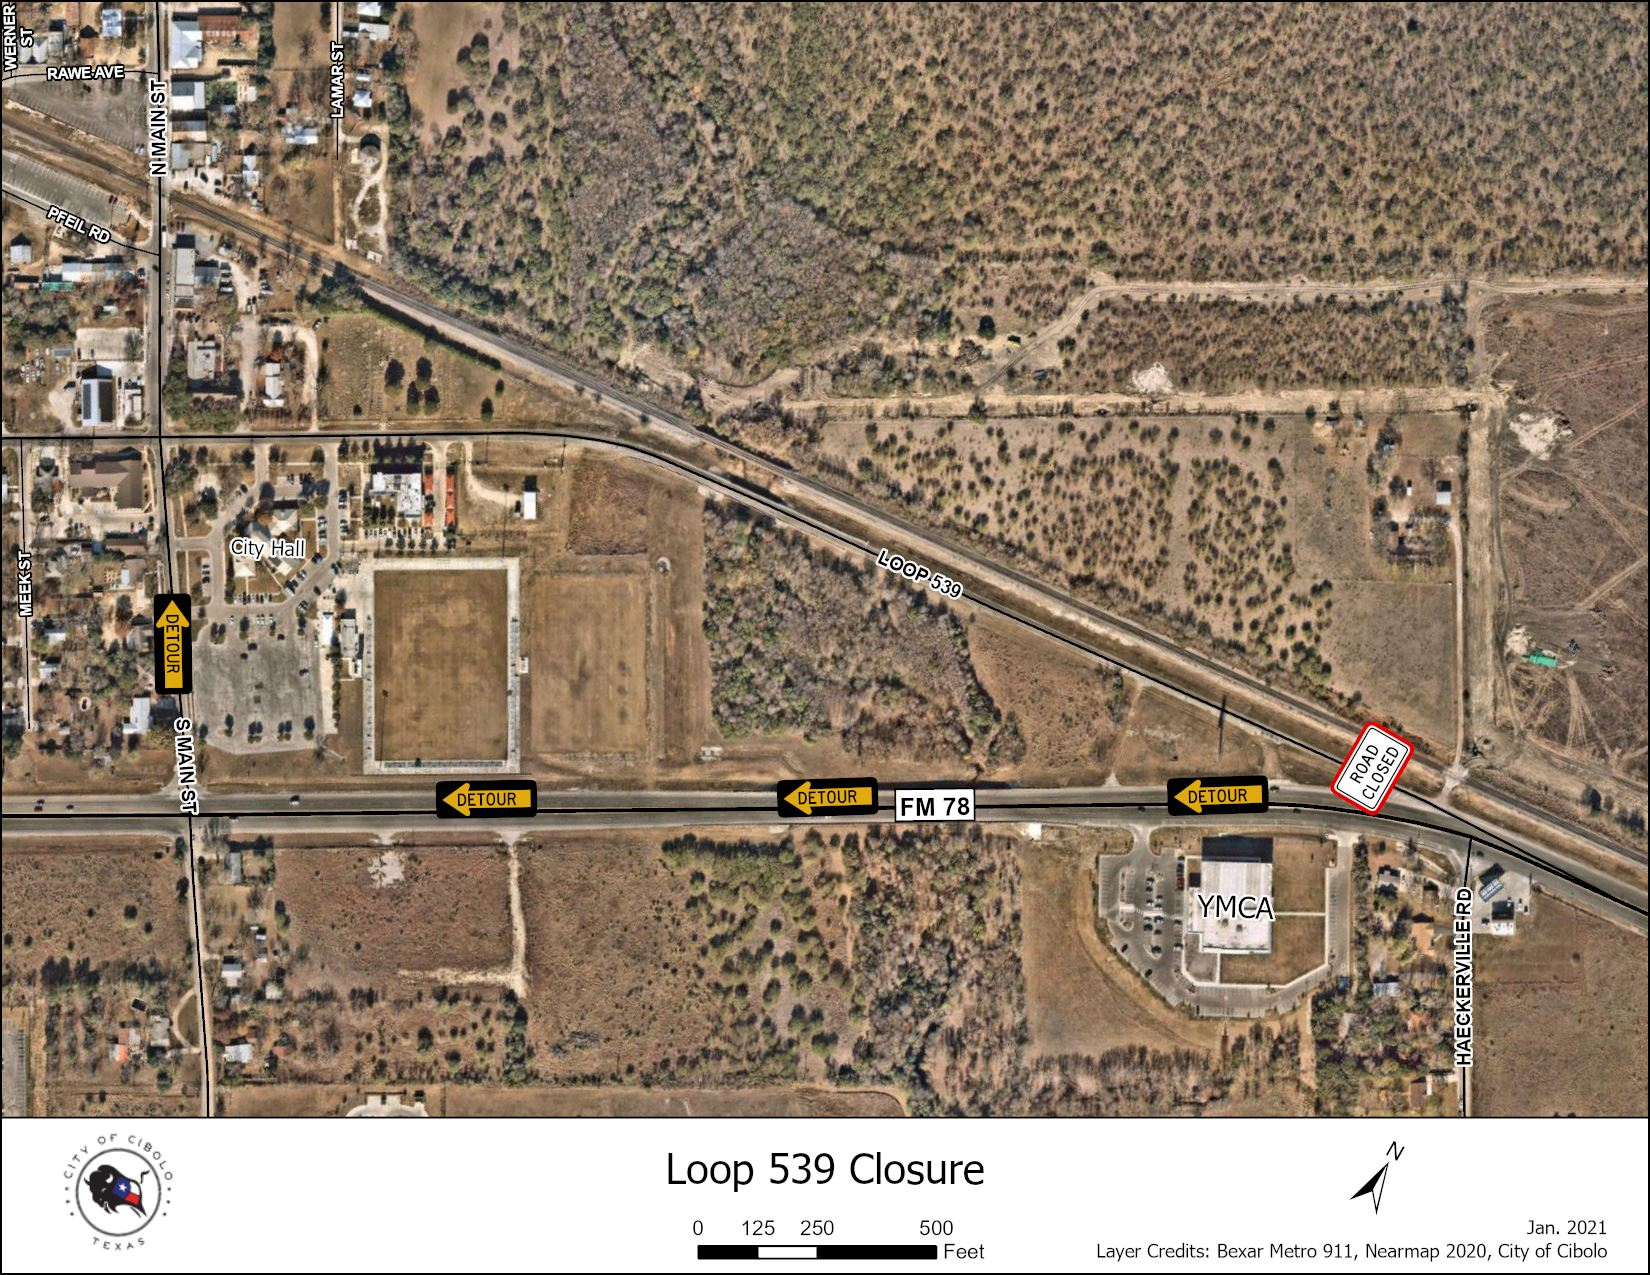 Picture of Loop 539 detour map.